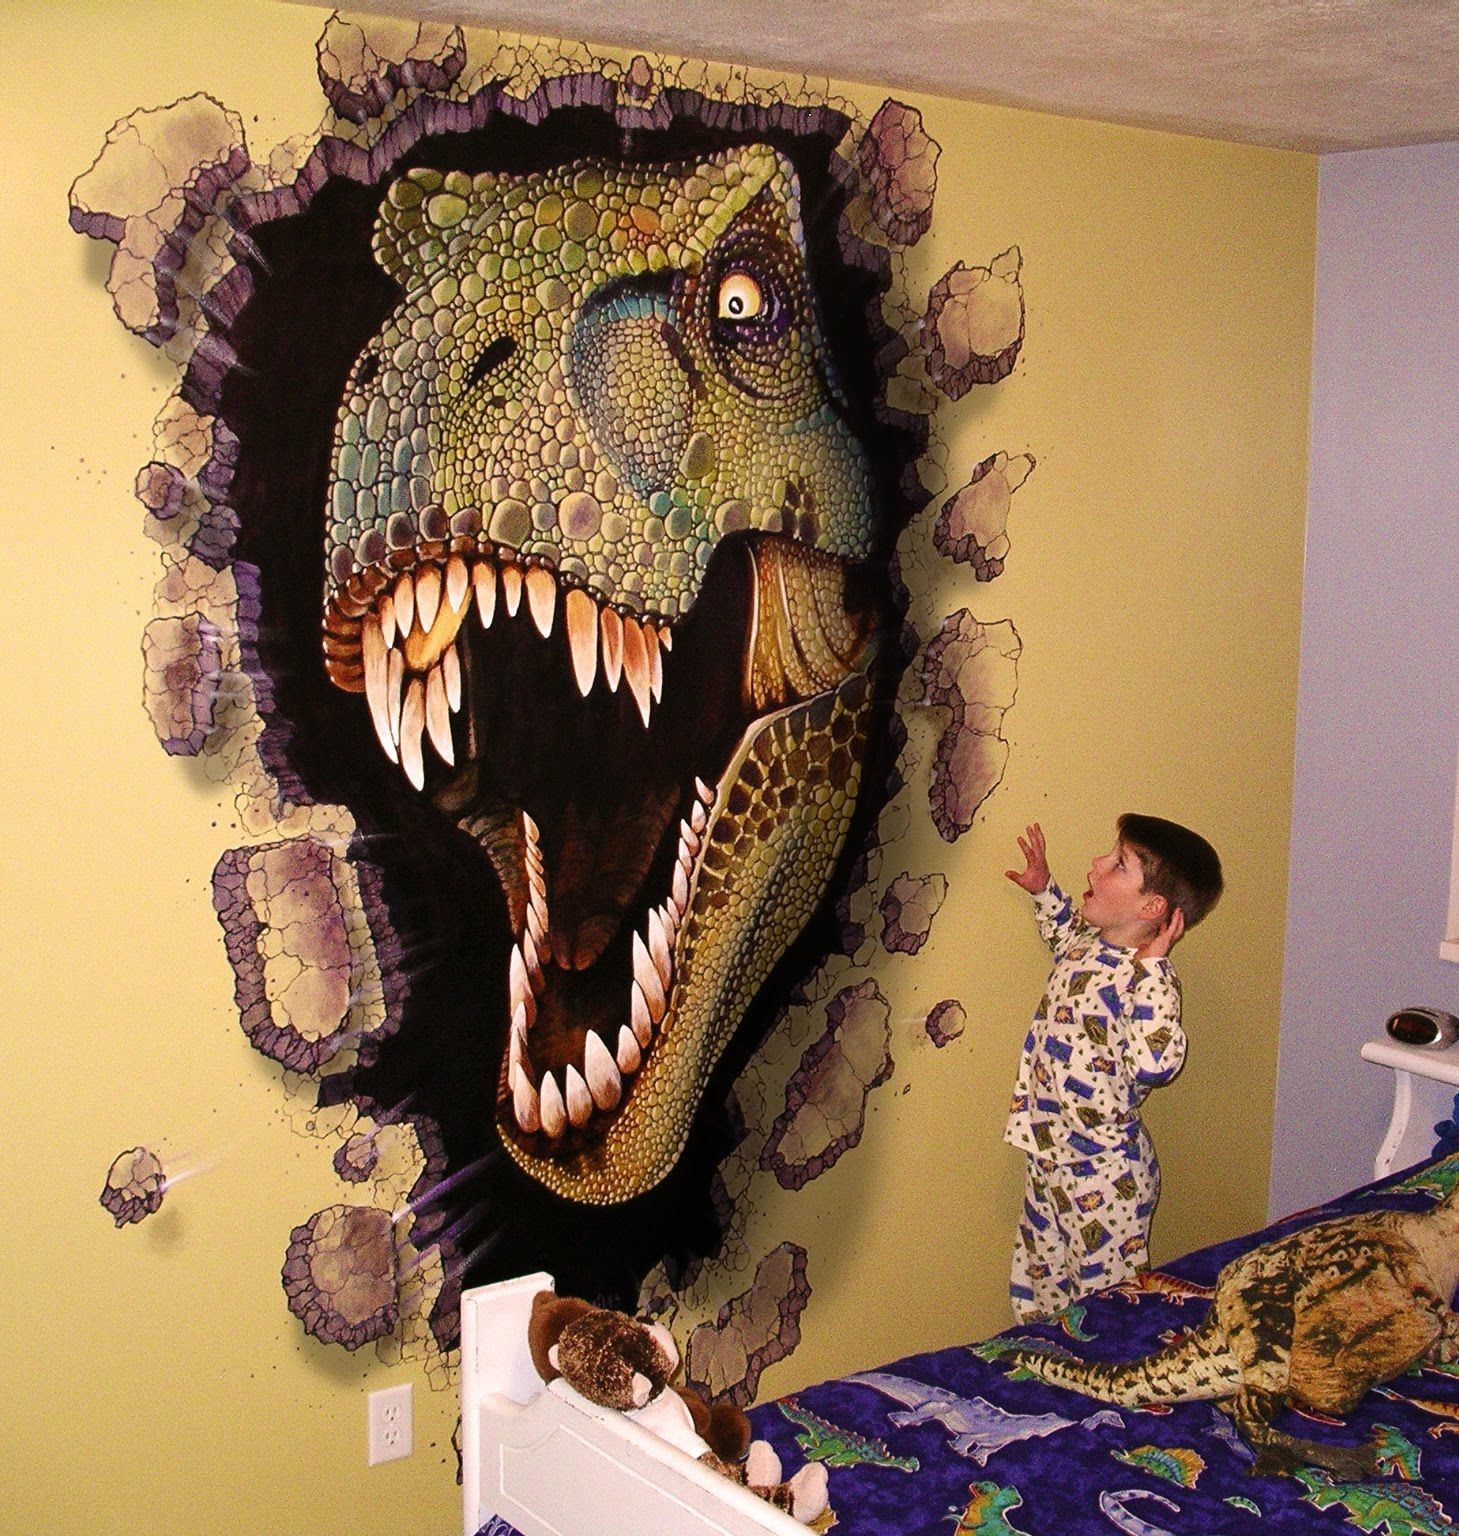 transformers wall mural home pinterest wall murals room and boys dinosaur room miles woods art wall murals